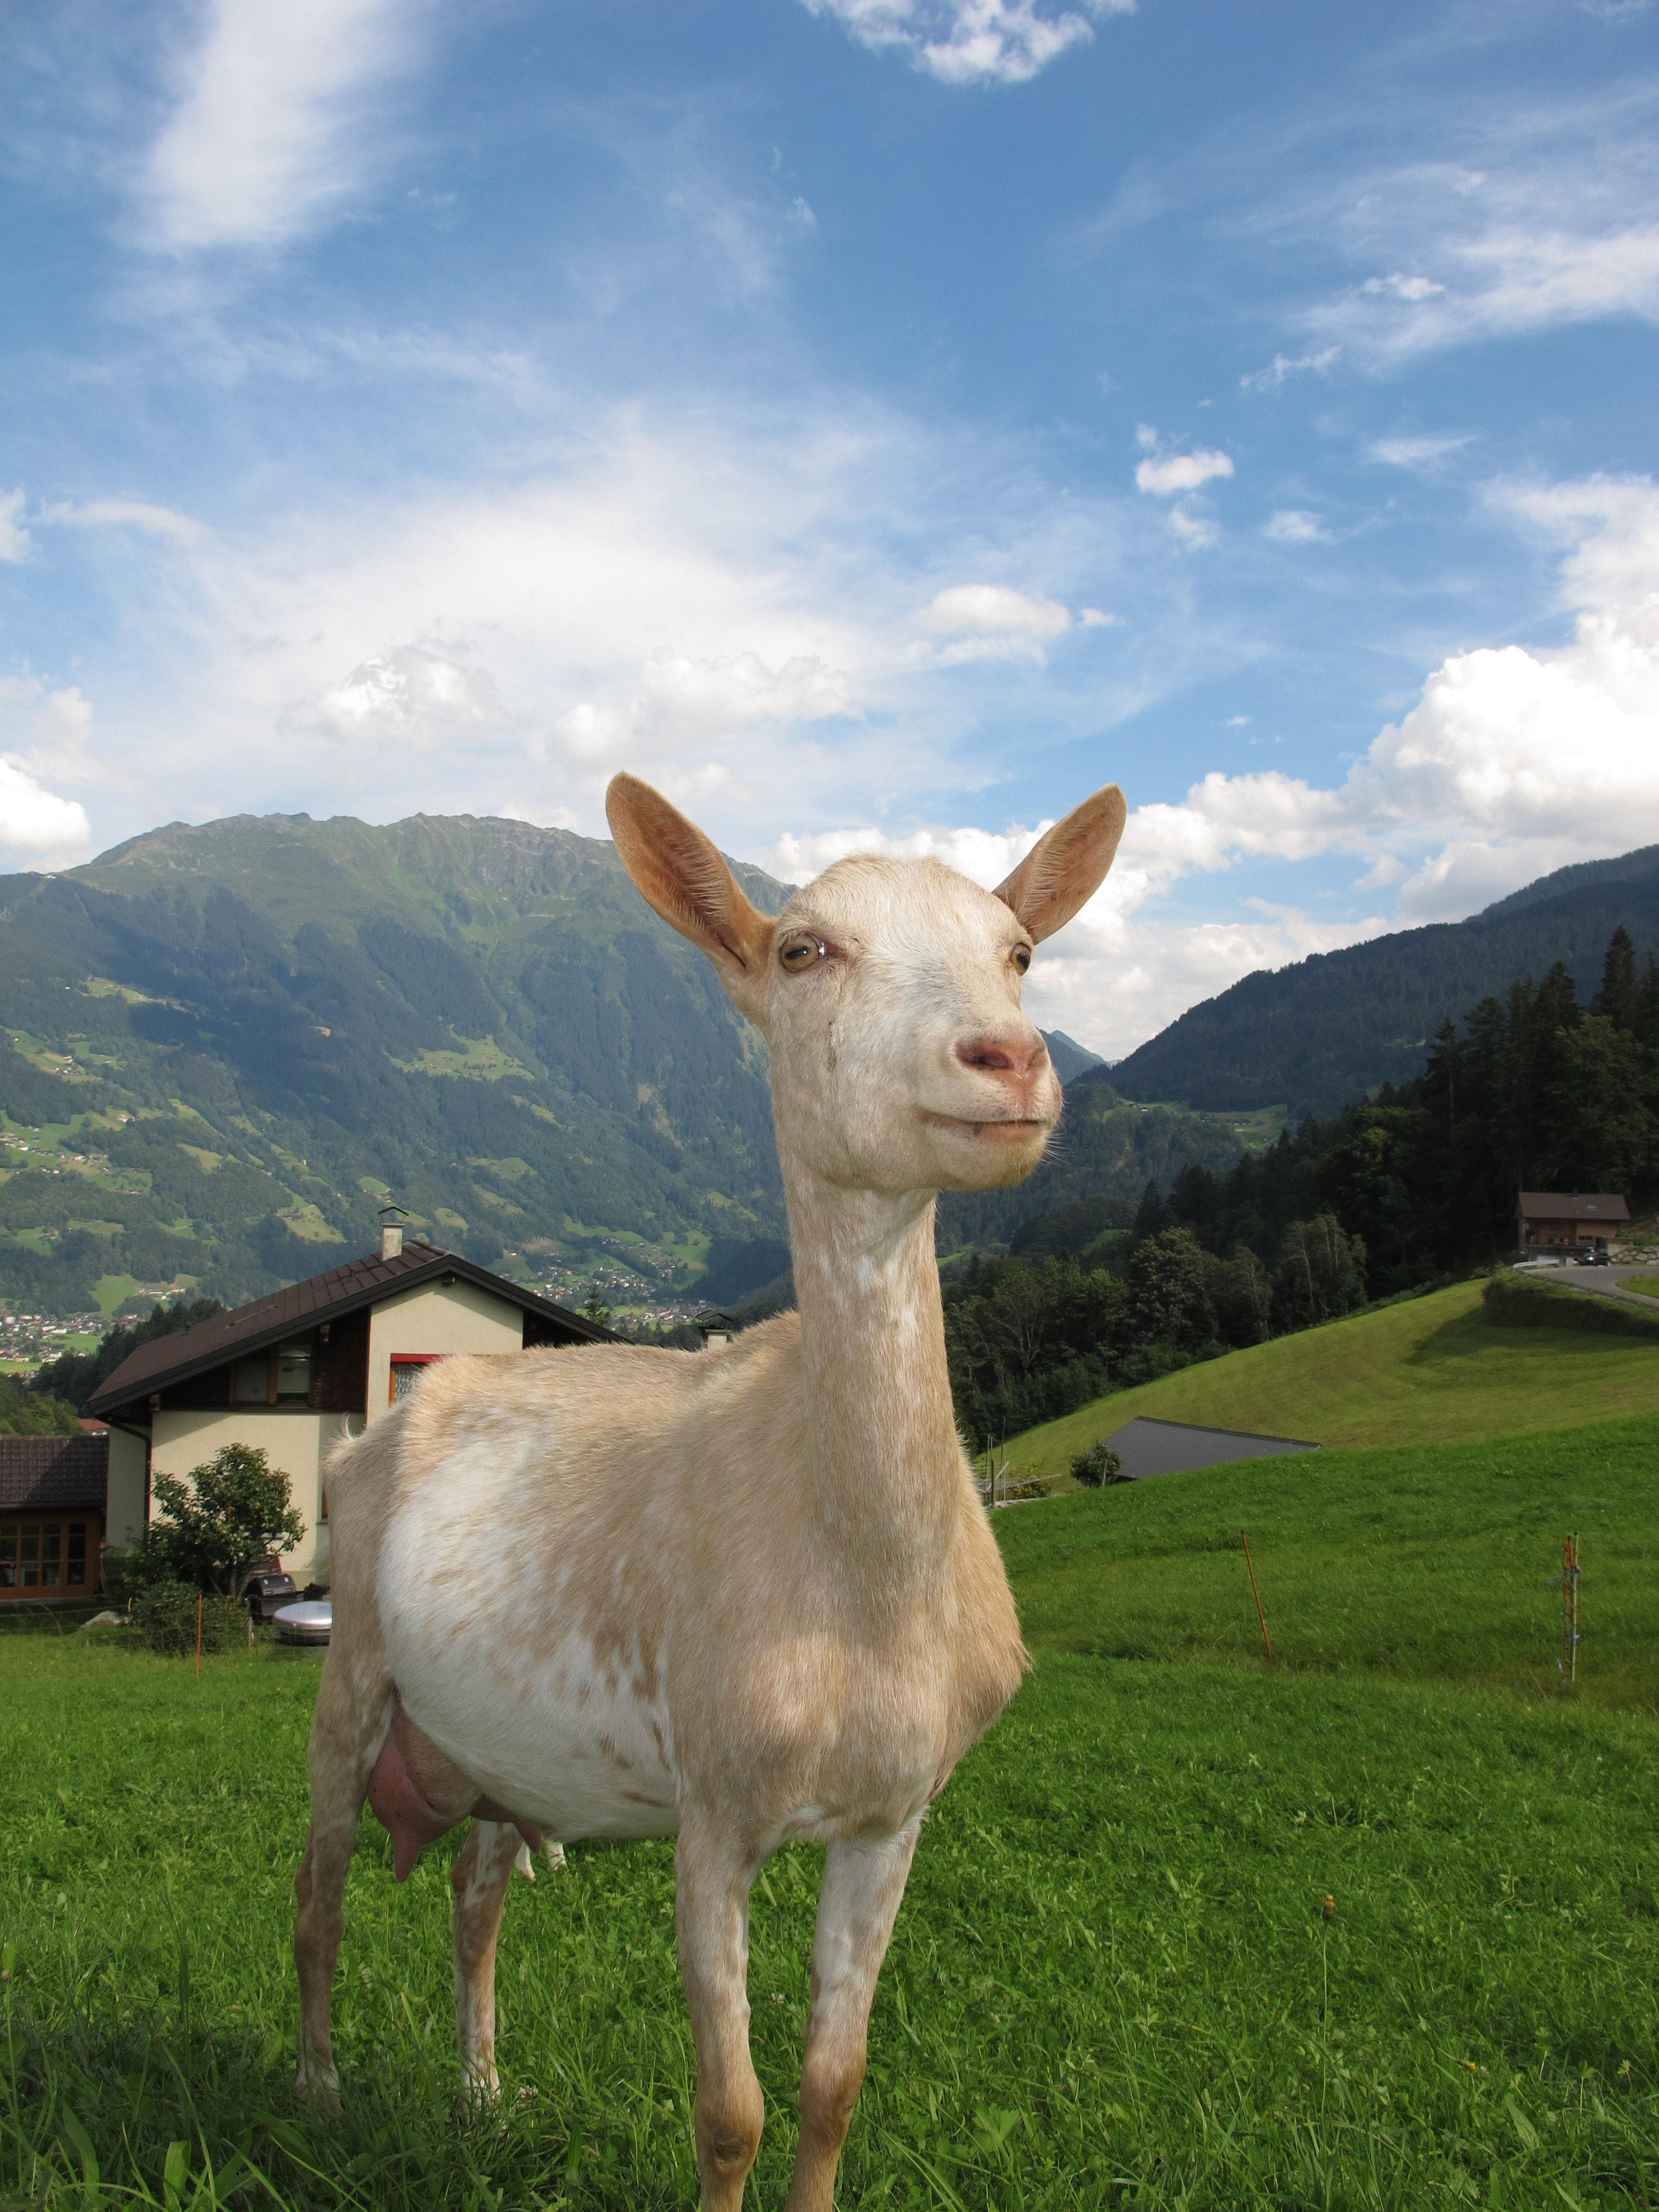 Whit and Beige Goat, Animal, Lawn, Sky, Rural, HQ Photo